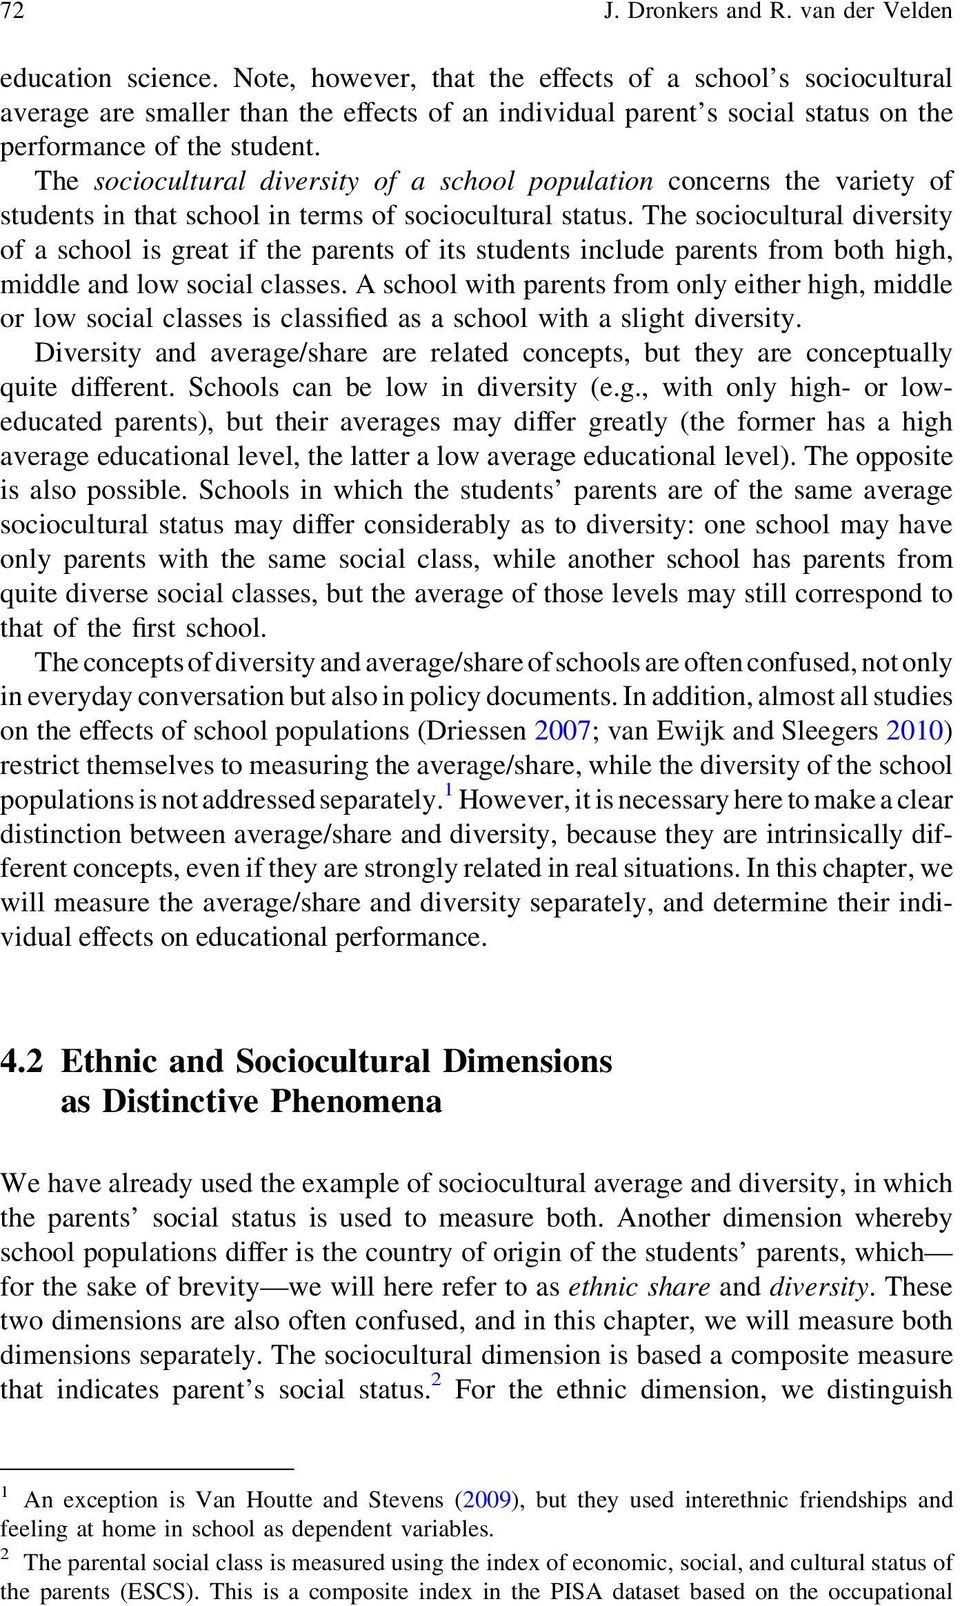 The sociocultural diversity of a school population concerns the variety of students in that school in terms of sociocultural status.